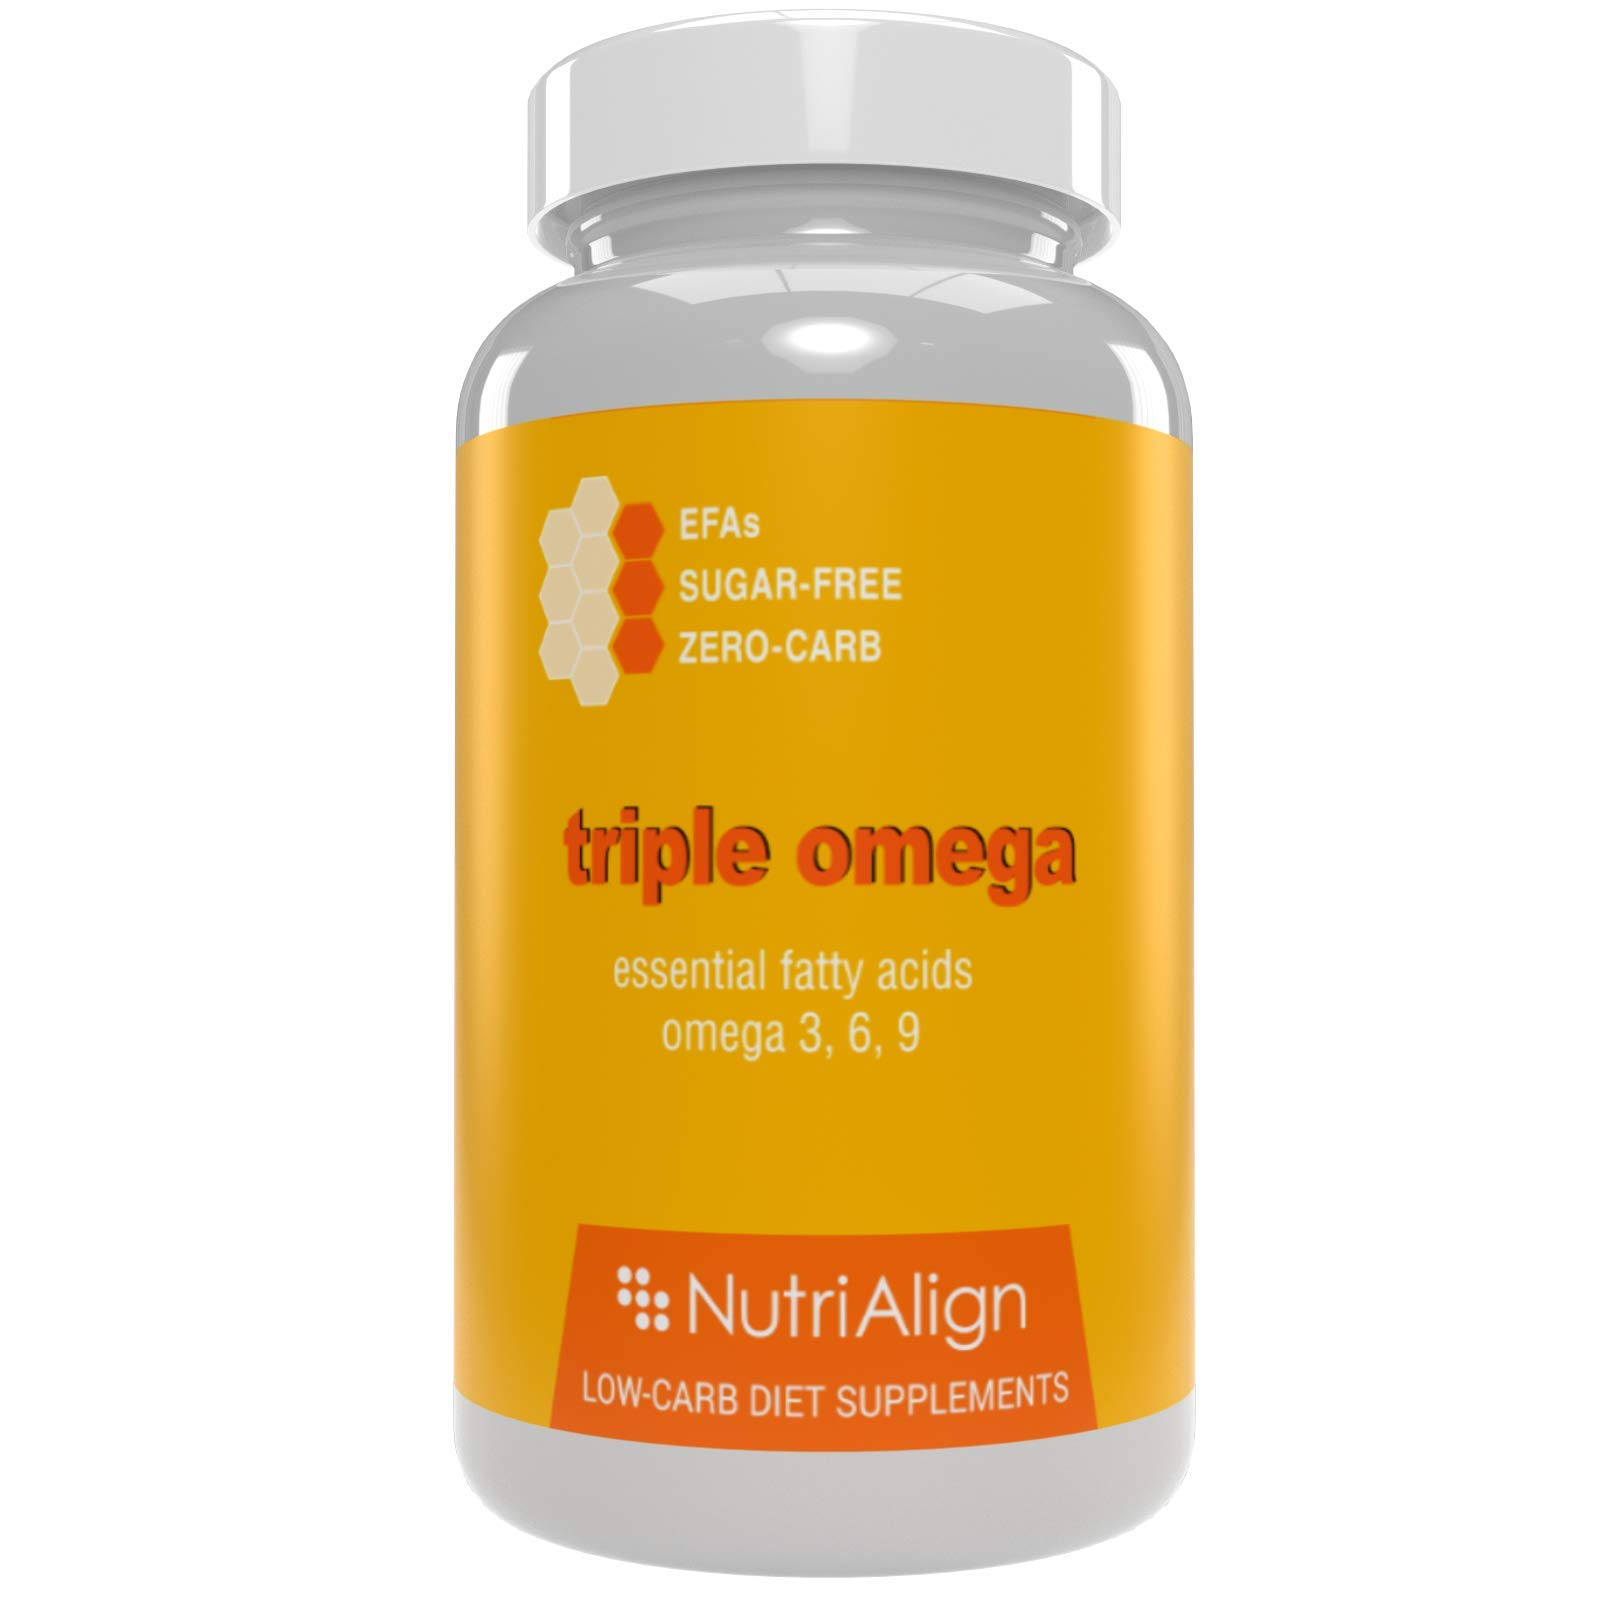 Nutri-Align Triple Omegas: Low-Carb Diet Supplement. Essential Omega Oils 3, 6 and 9 | Zero-carb. 90 Capsules.